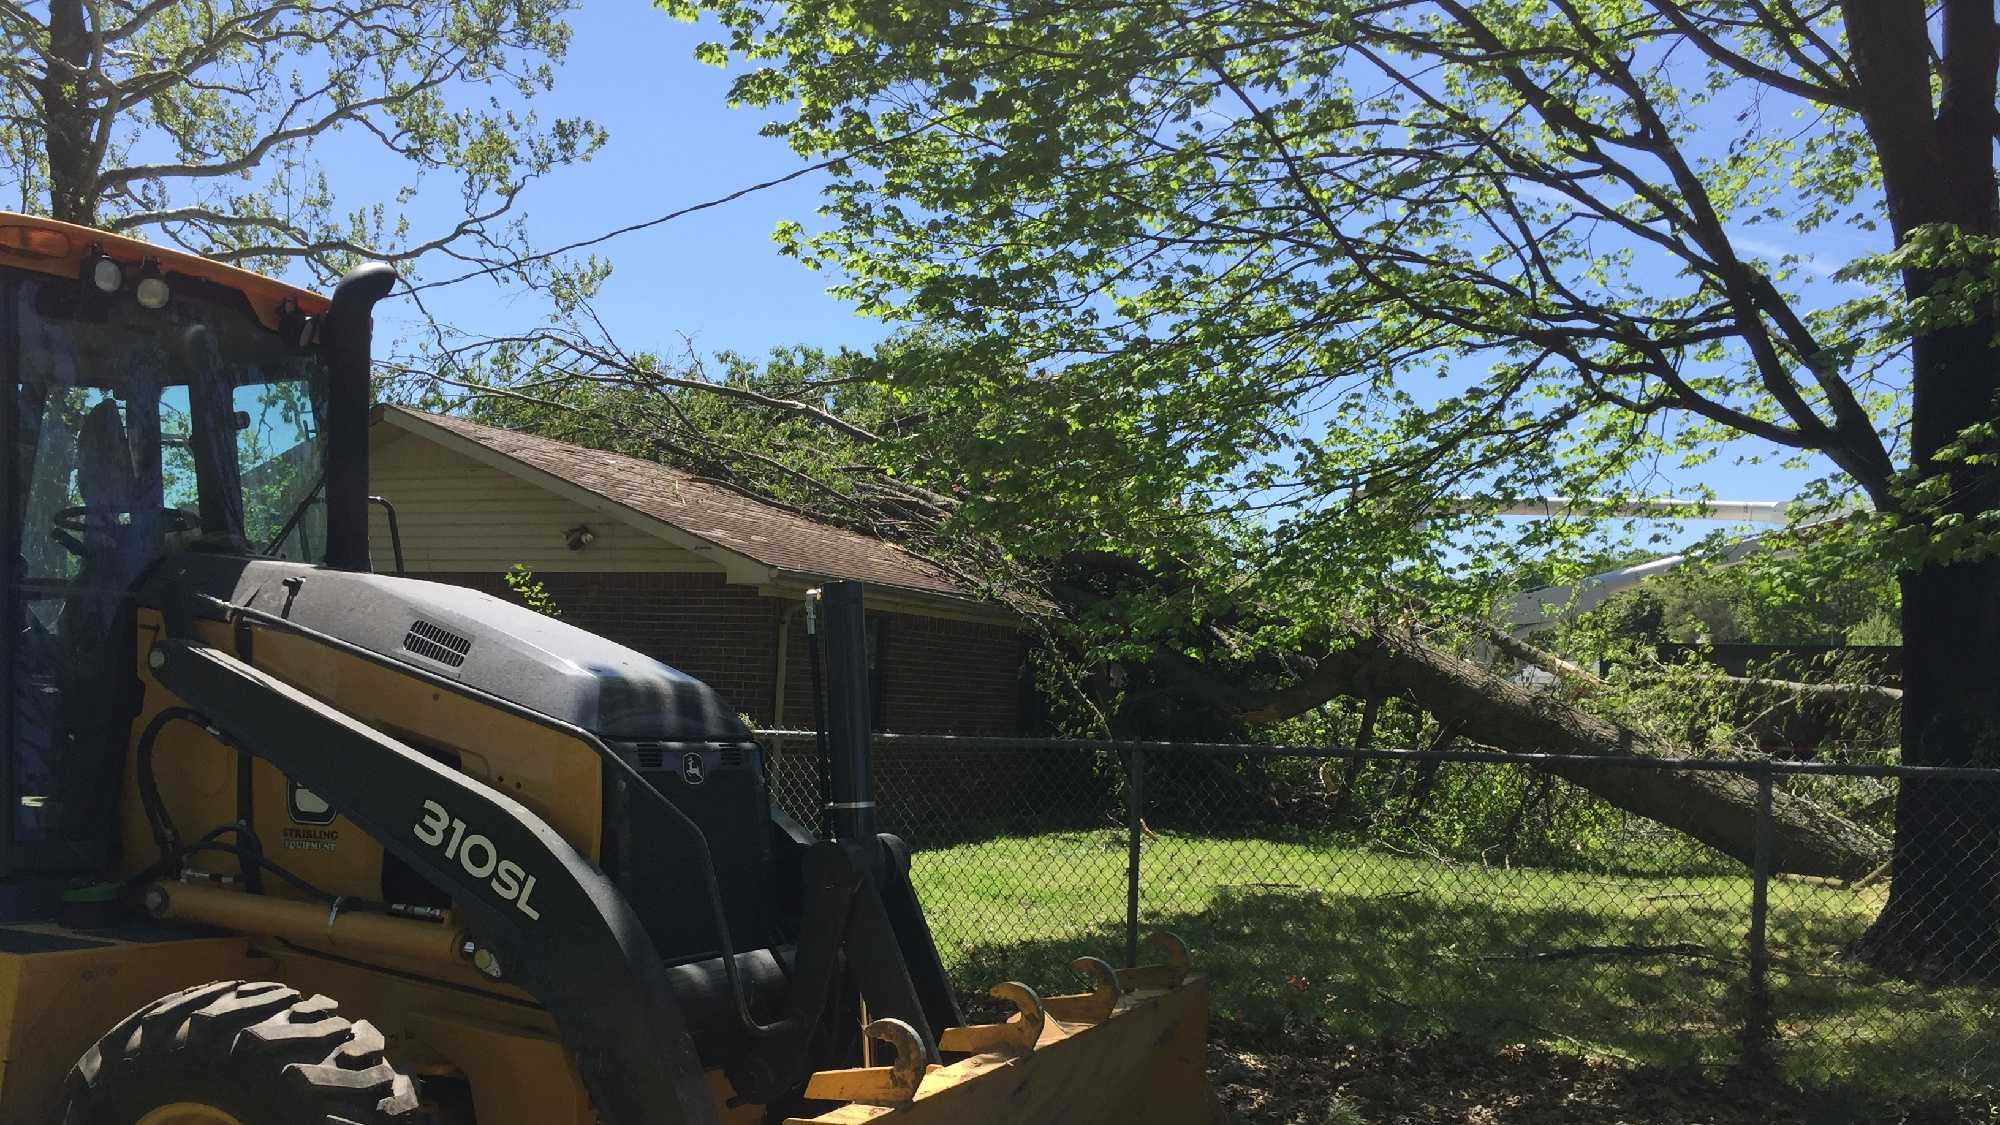 Crews are cleaning up storm damage after an EF-1 tornado passed through Decatur this week.